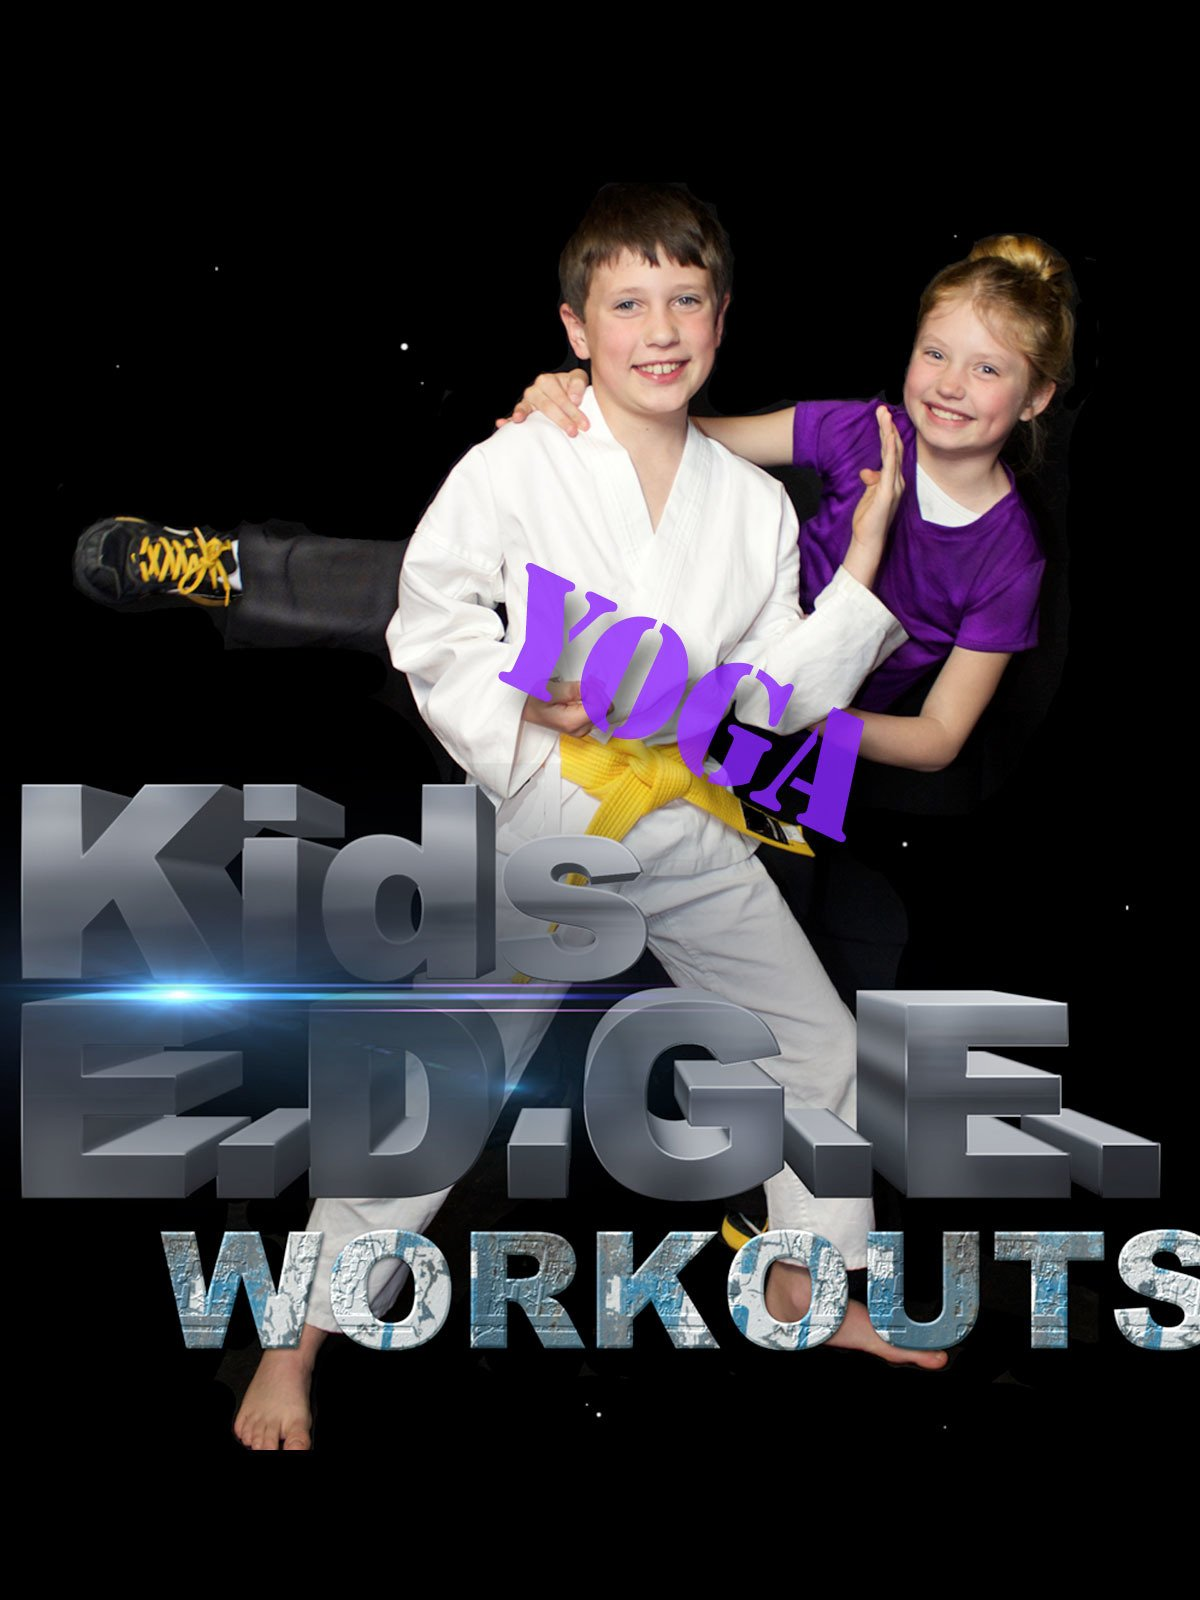 Amazon.com: Kids' E.D.G.E. Workouts, Karate: ---: Amazon.com ...